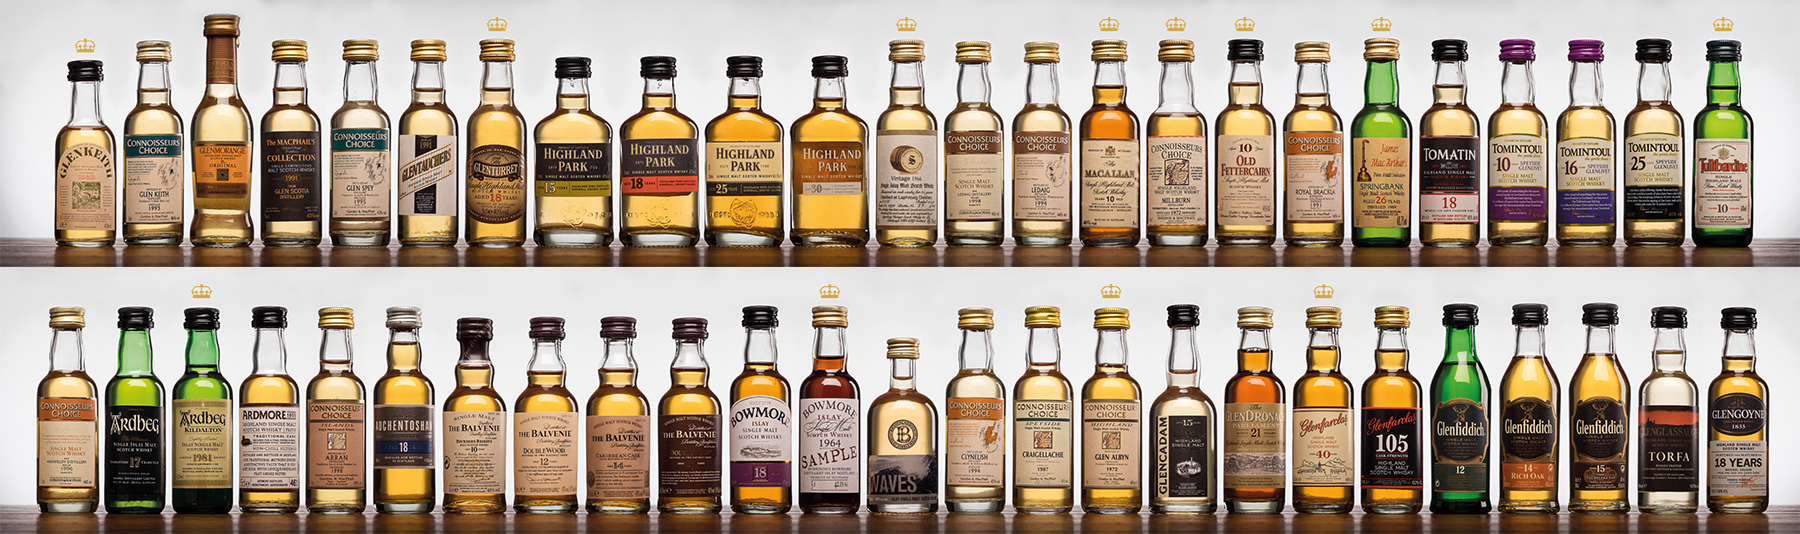 The Whisky Parade